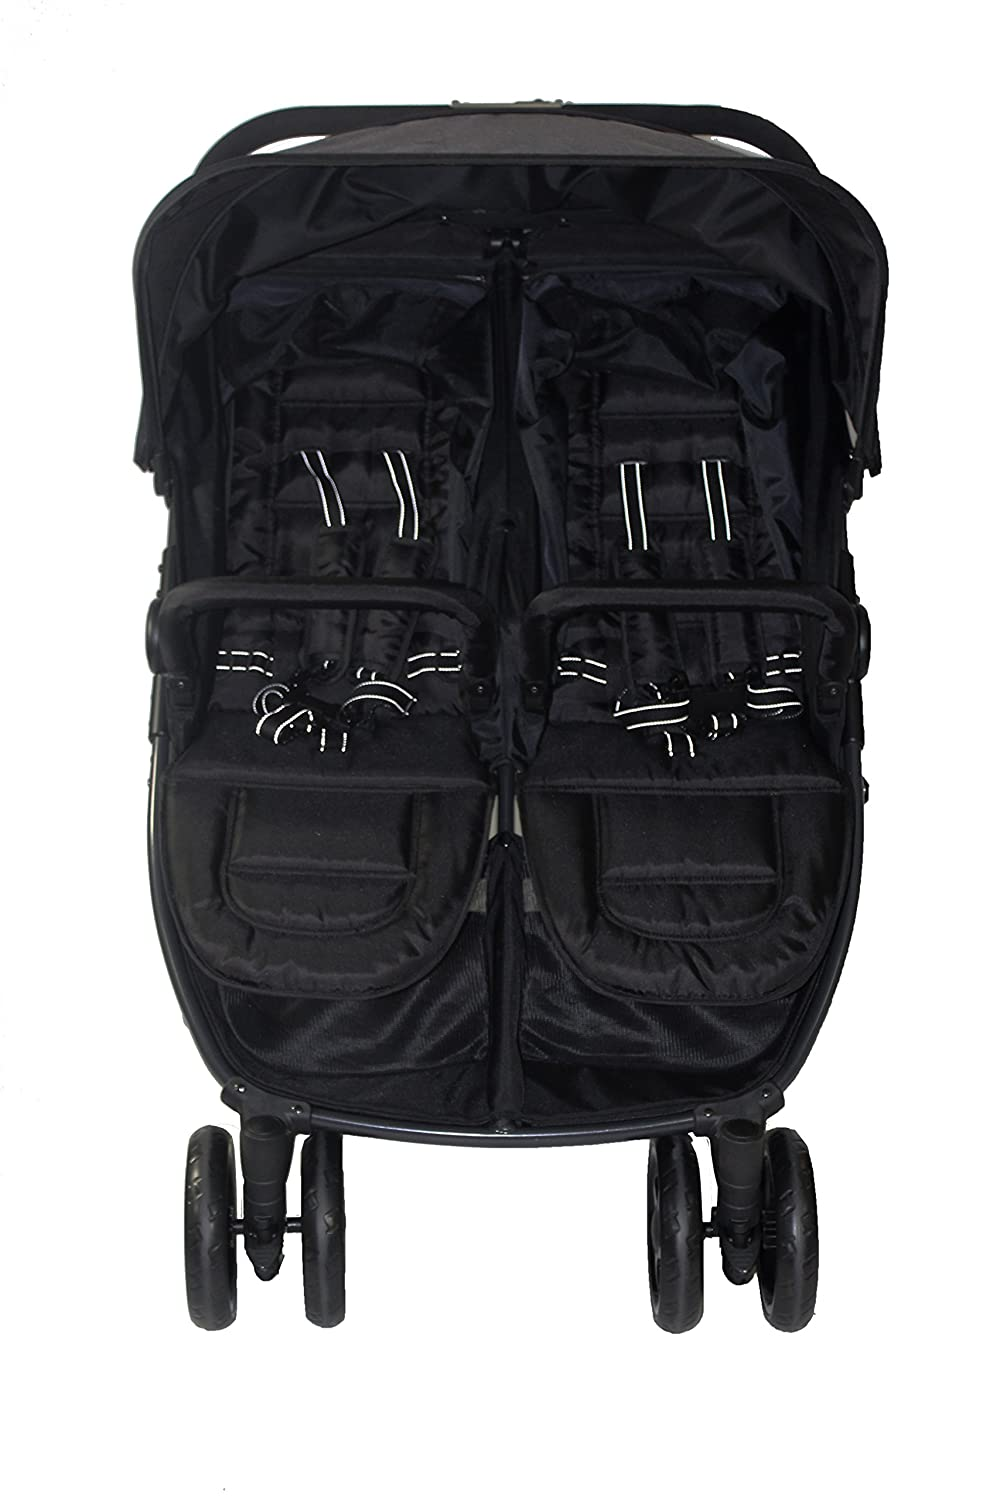 RedKite Push Me Black Frame Twini Twin Jogger Pushchair New Colour And New Model 2017 Design